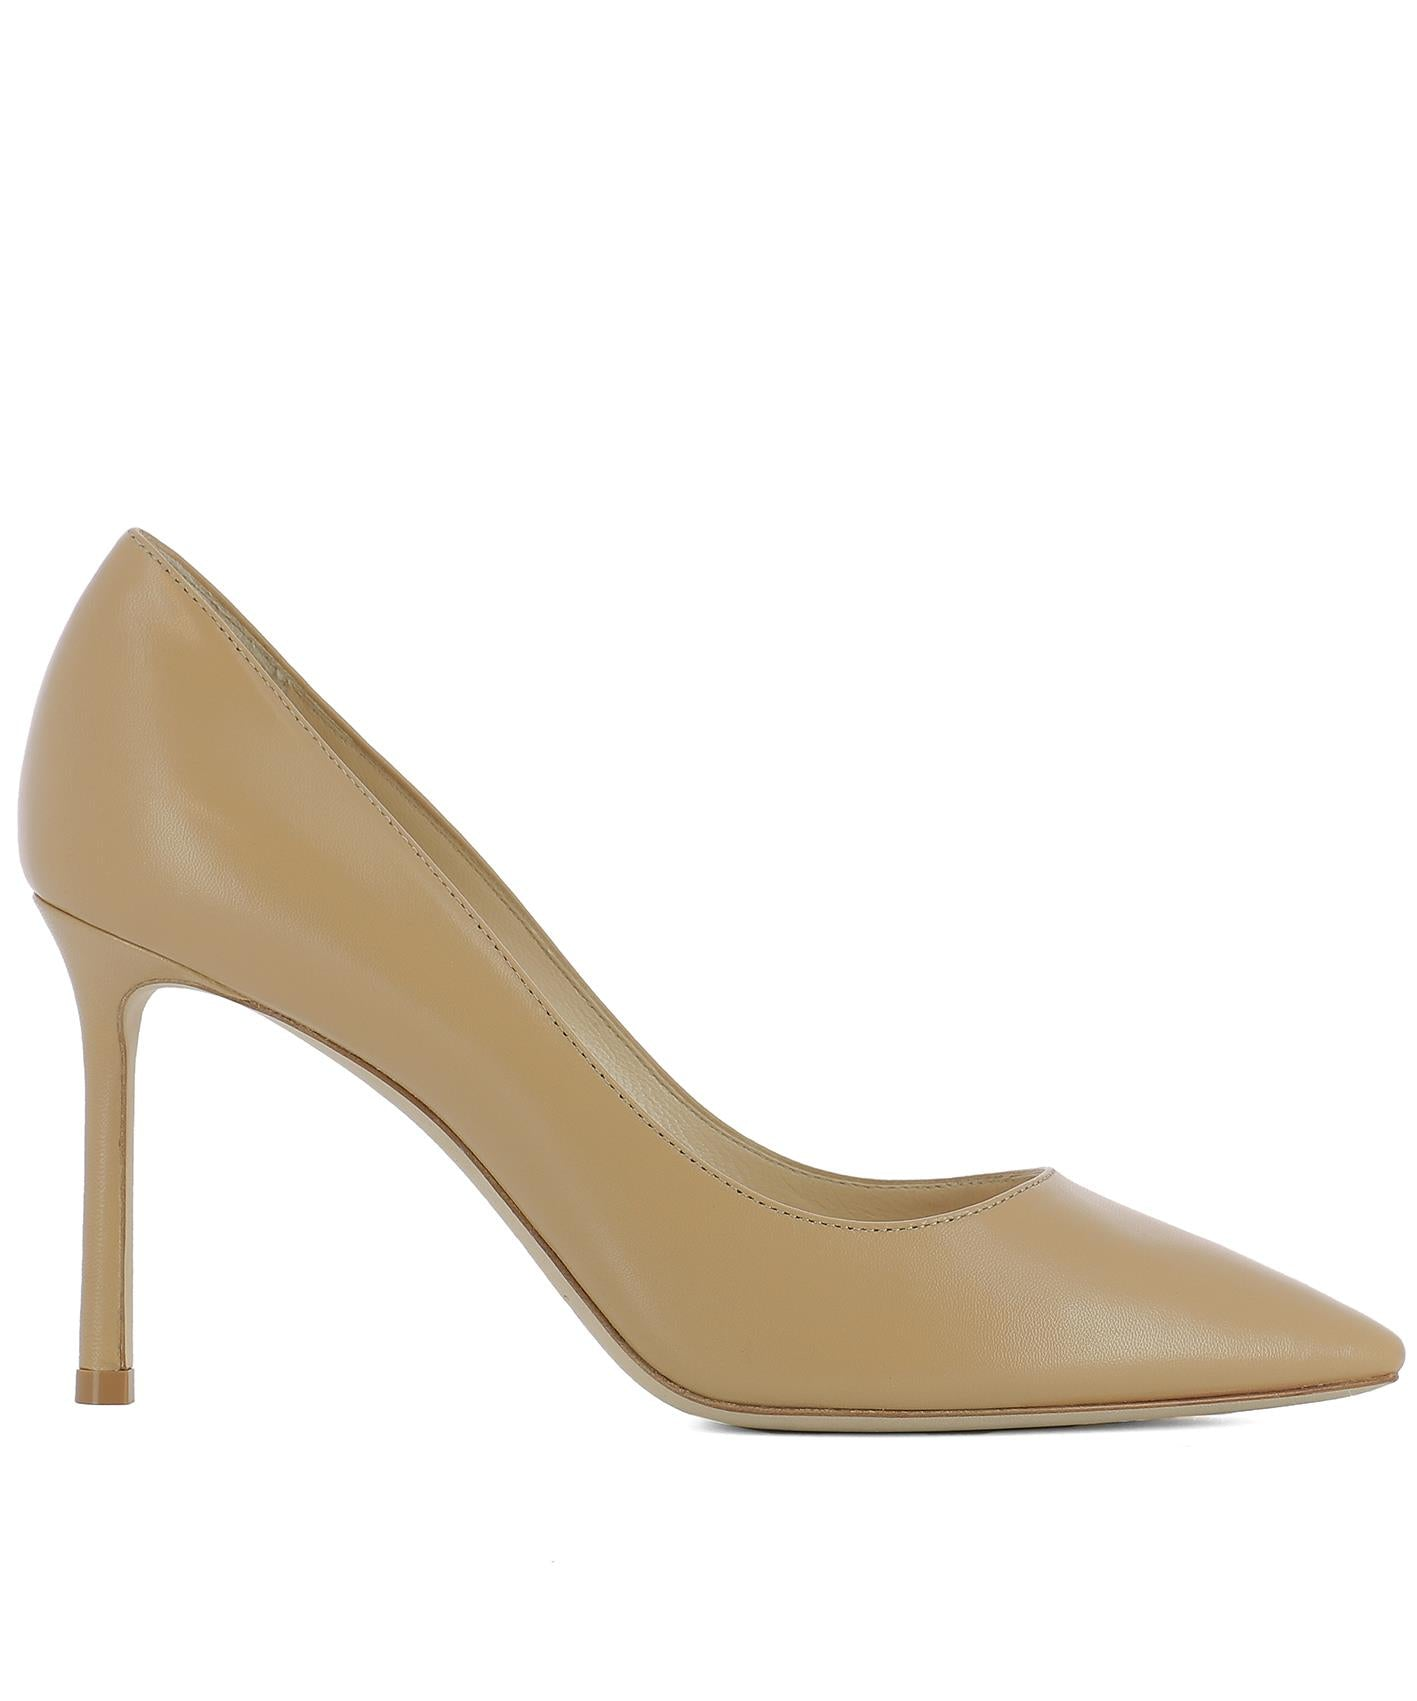 JIMMY CHOO ROMY 85 POINTED PUMPS